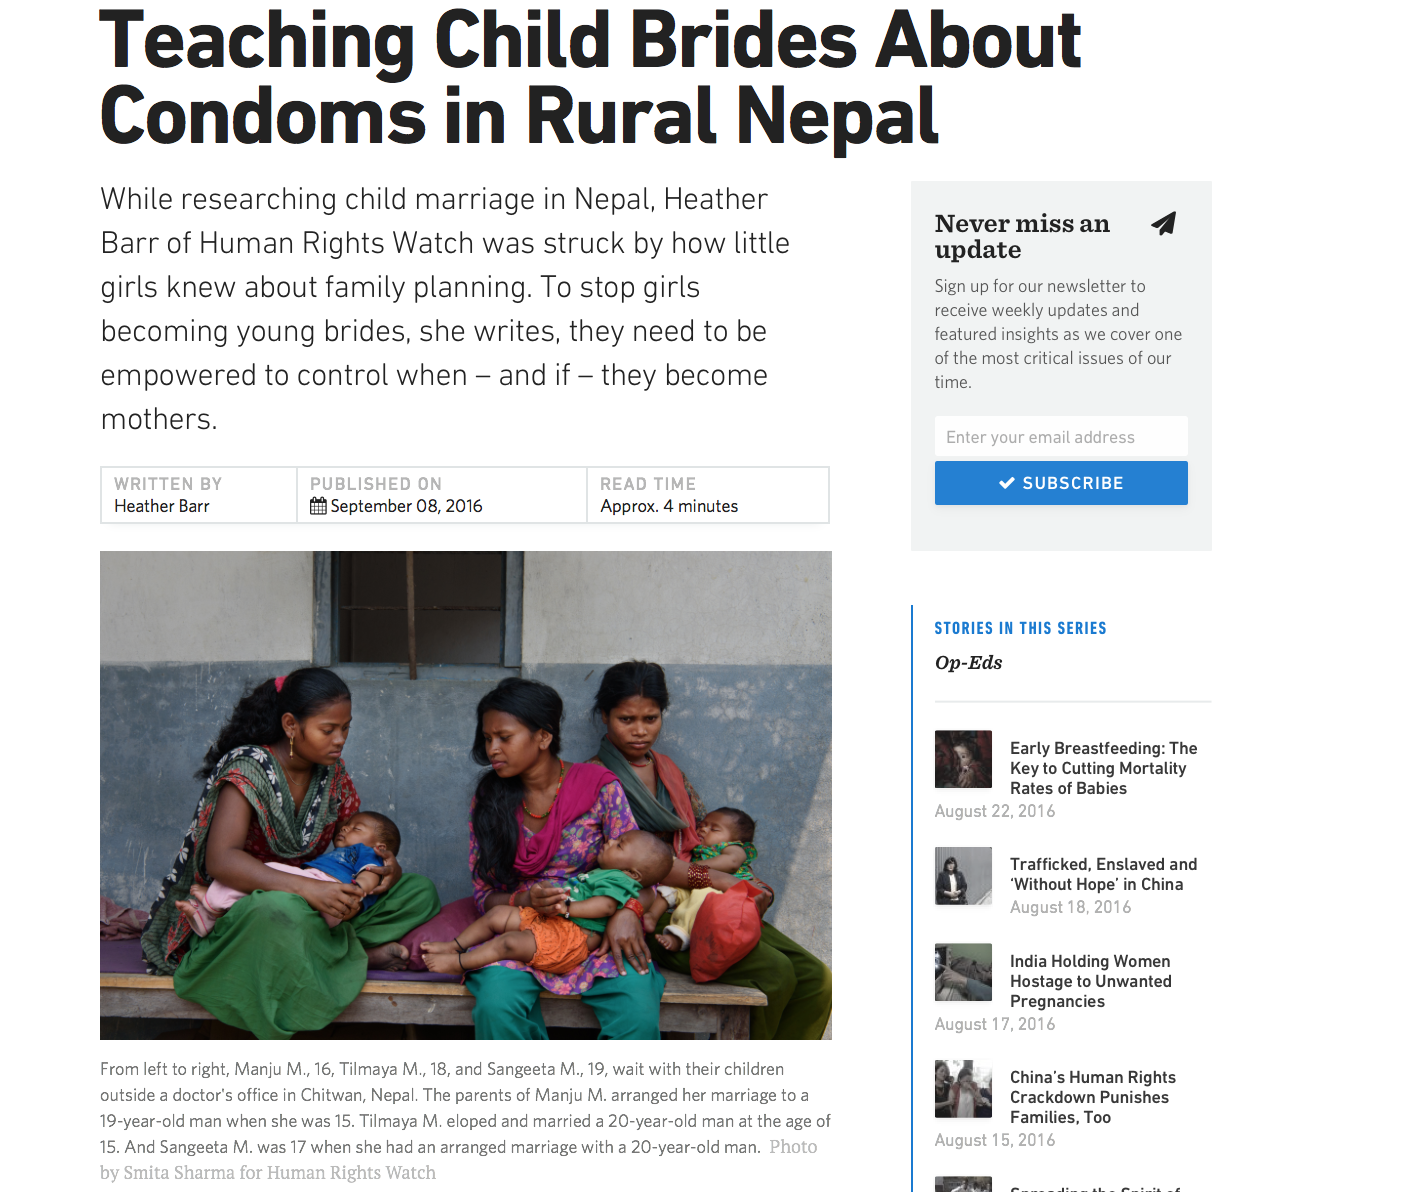 https://www.newsdeeply.com/womenandgirls/community/2016/09/08/teaching-child-brides-about-condoms-in-rural-nepal